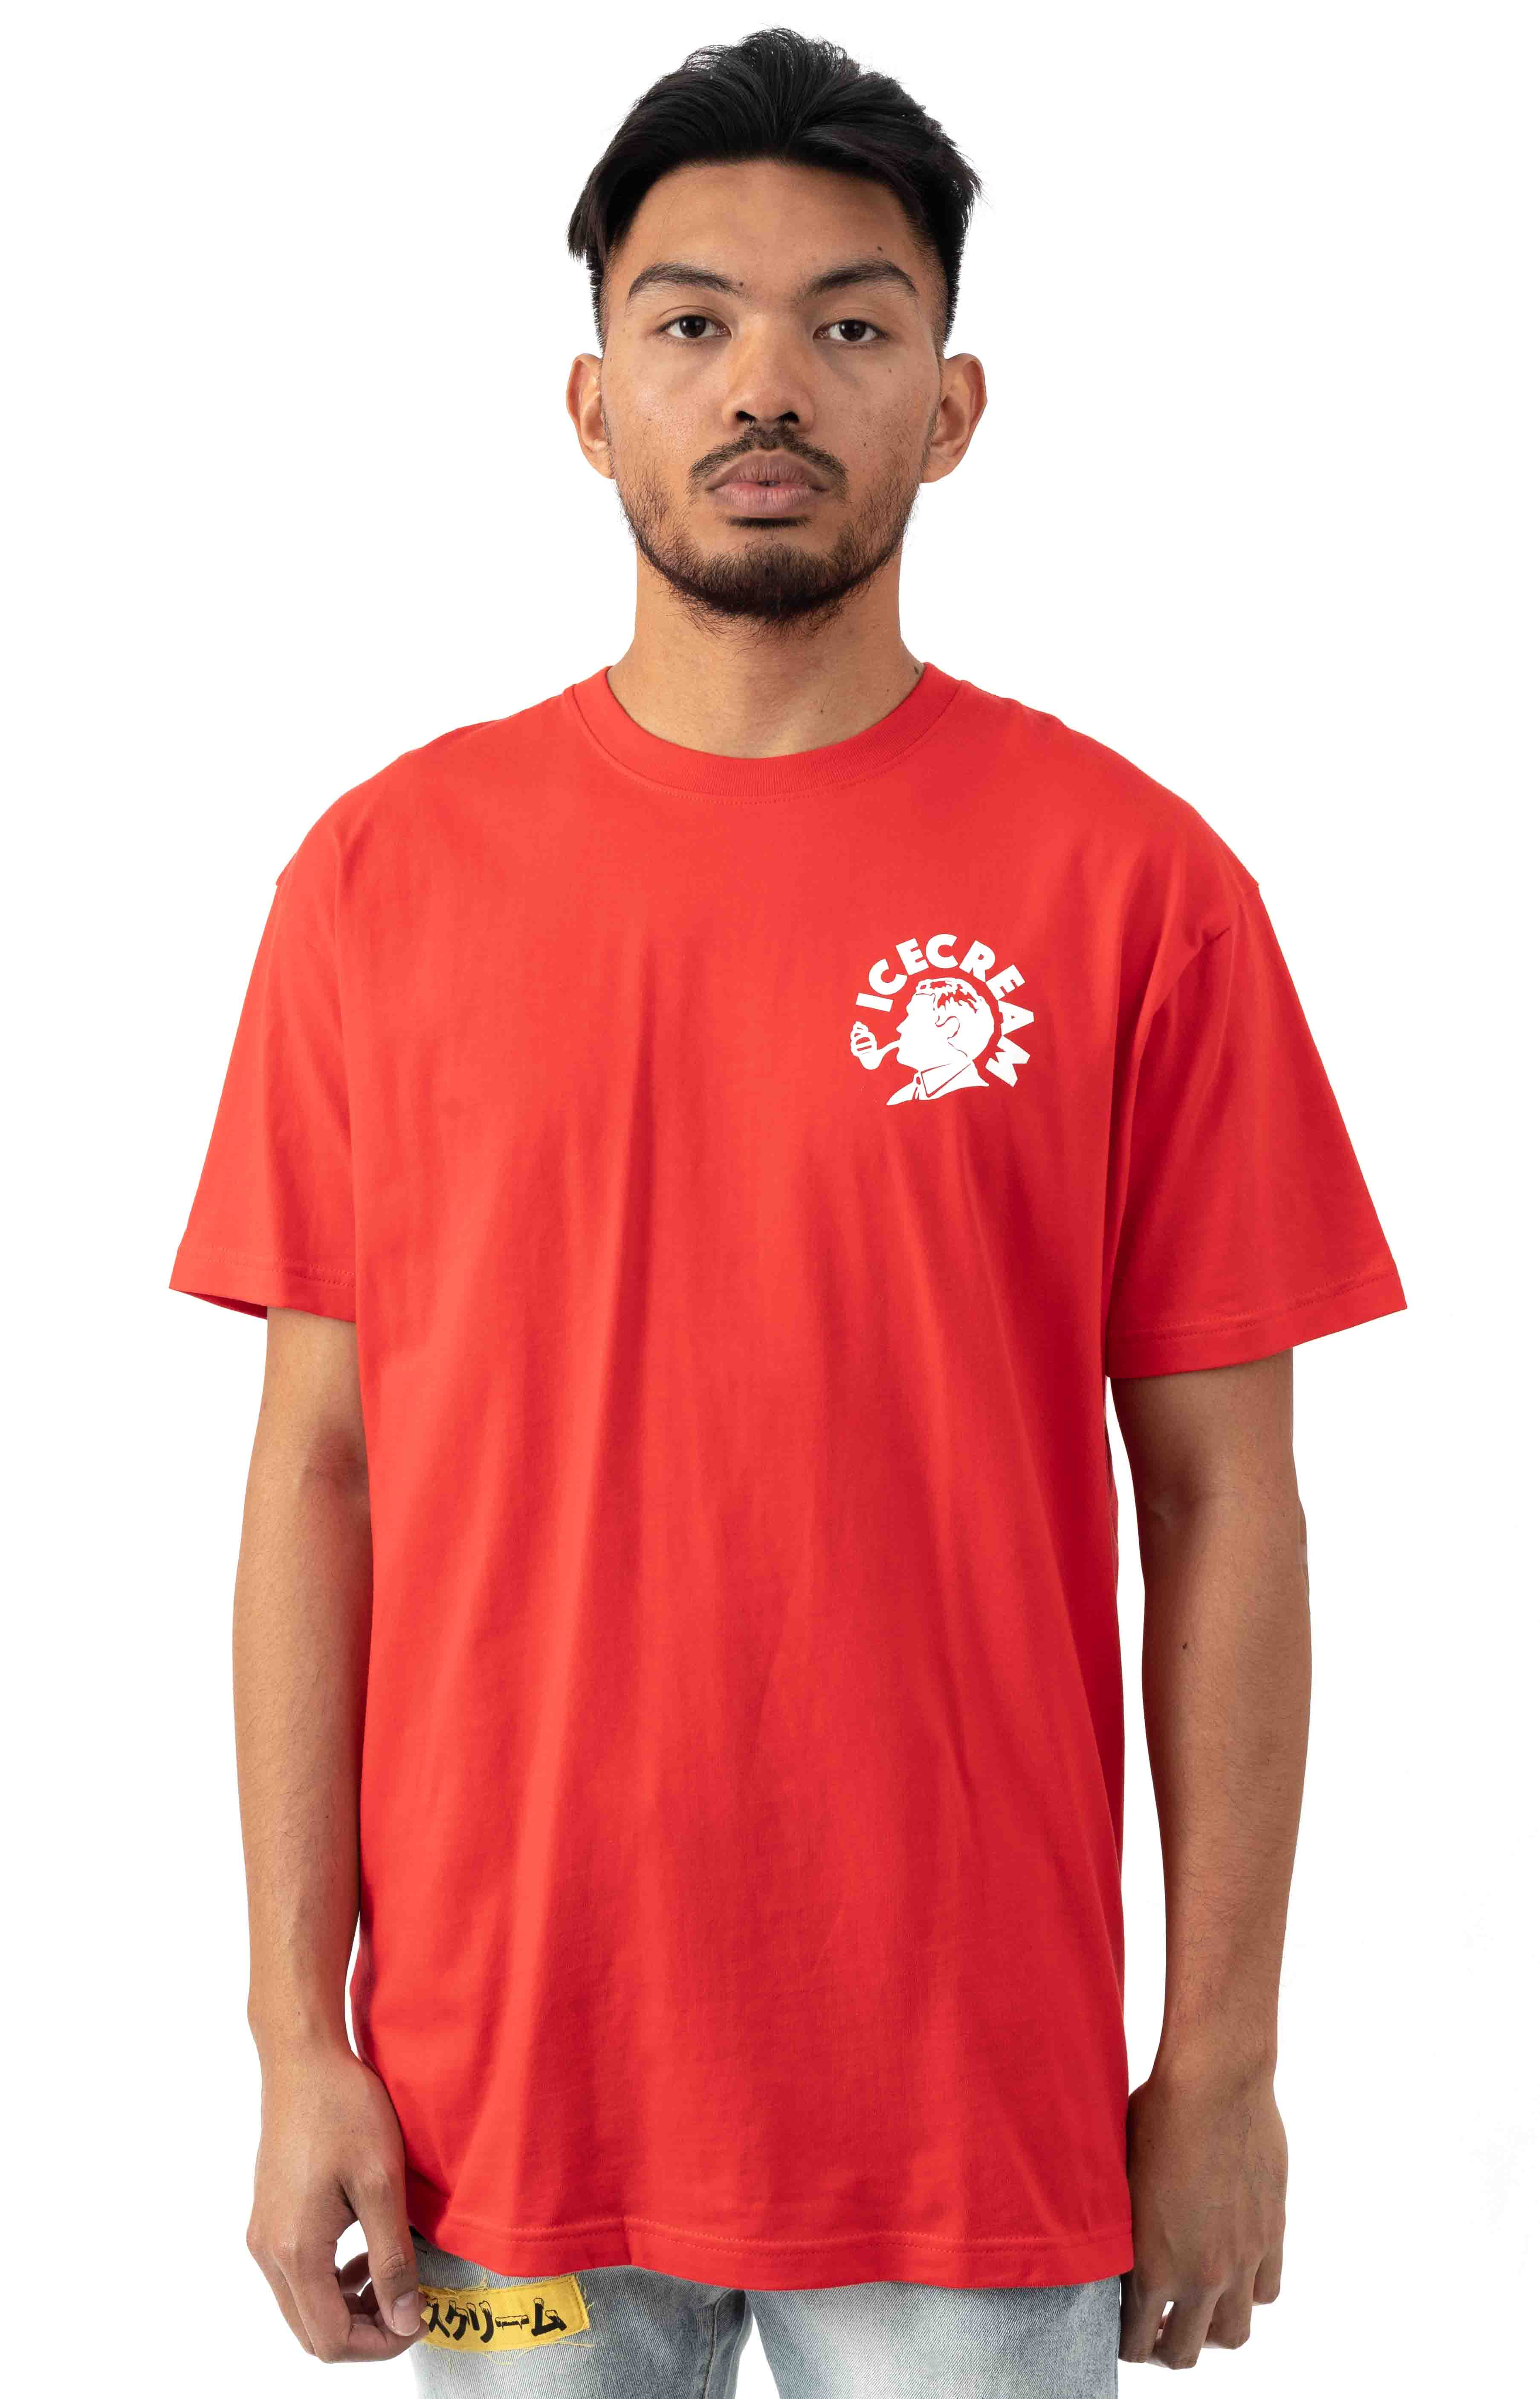 Put That In Your Pipe T-Shirt - Tomato 2